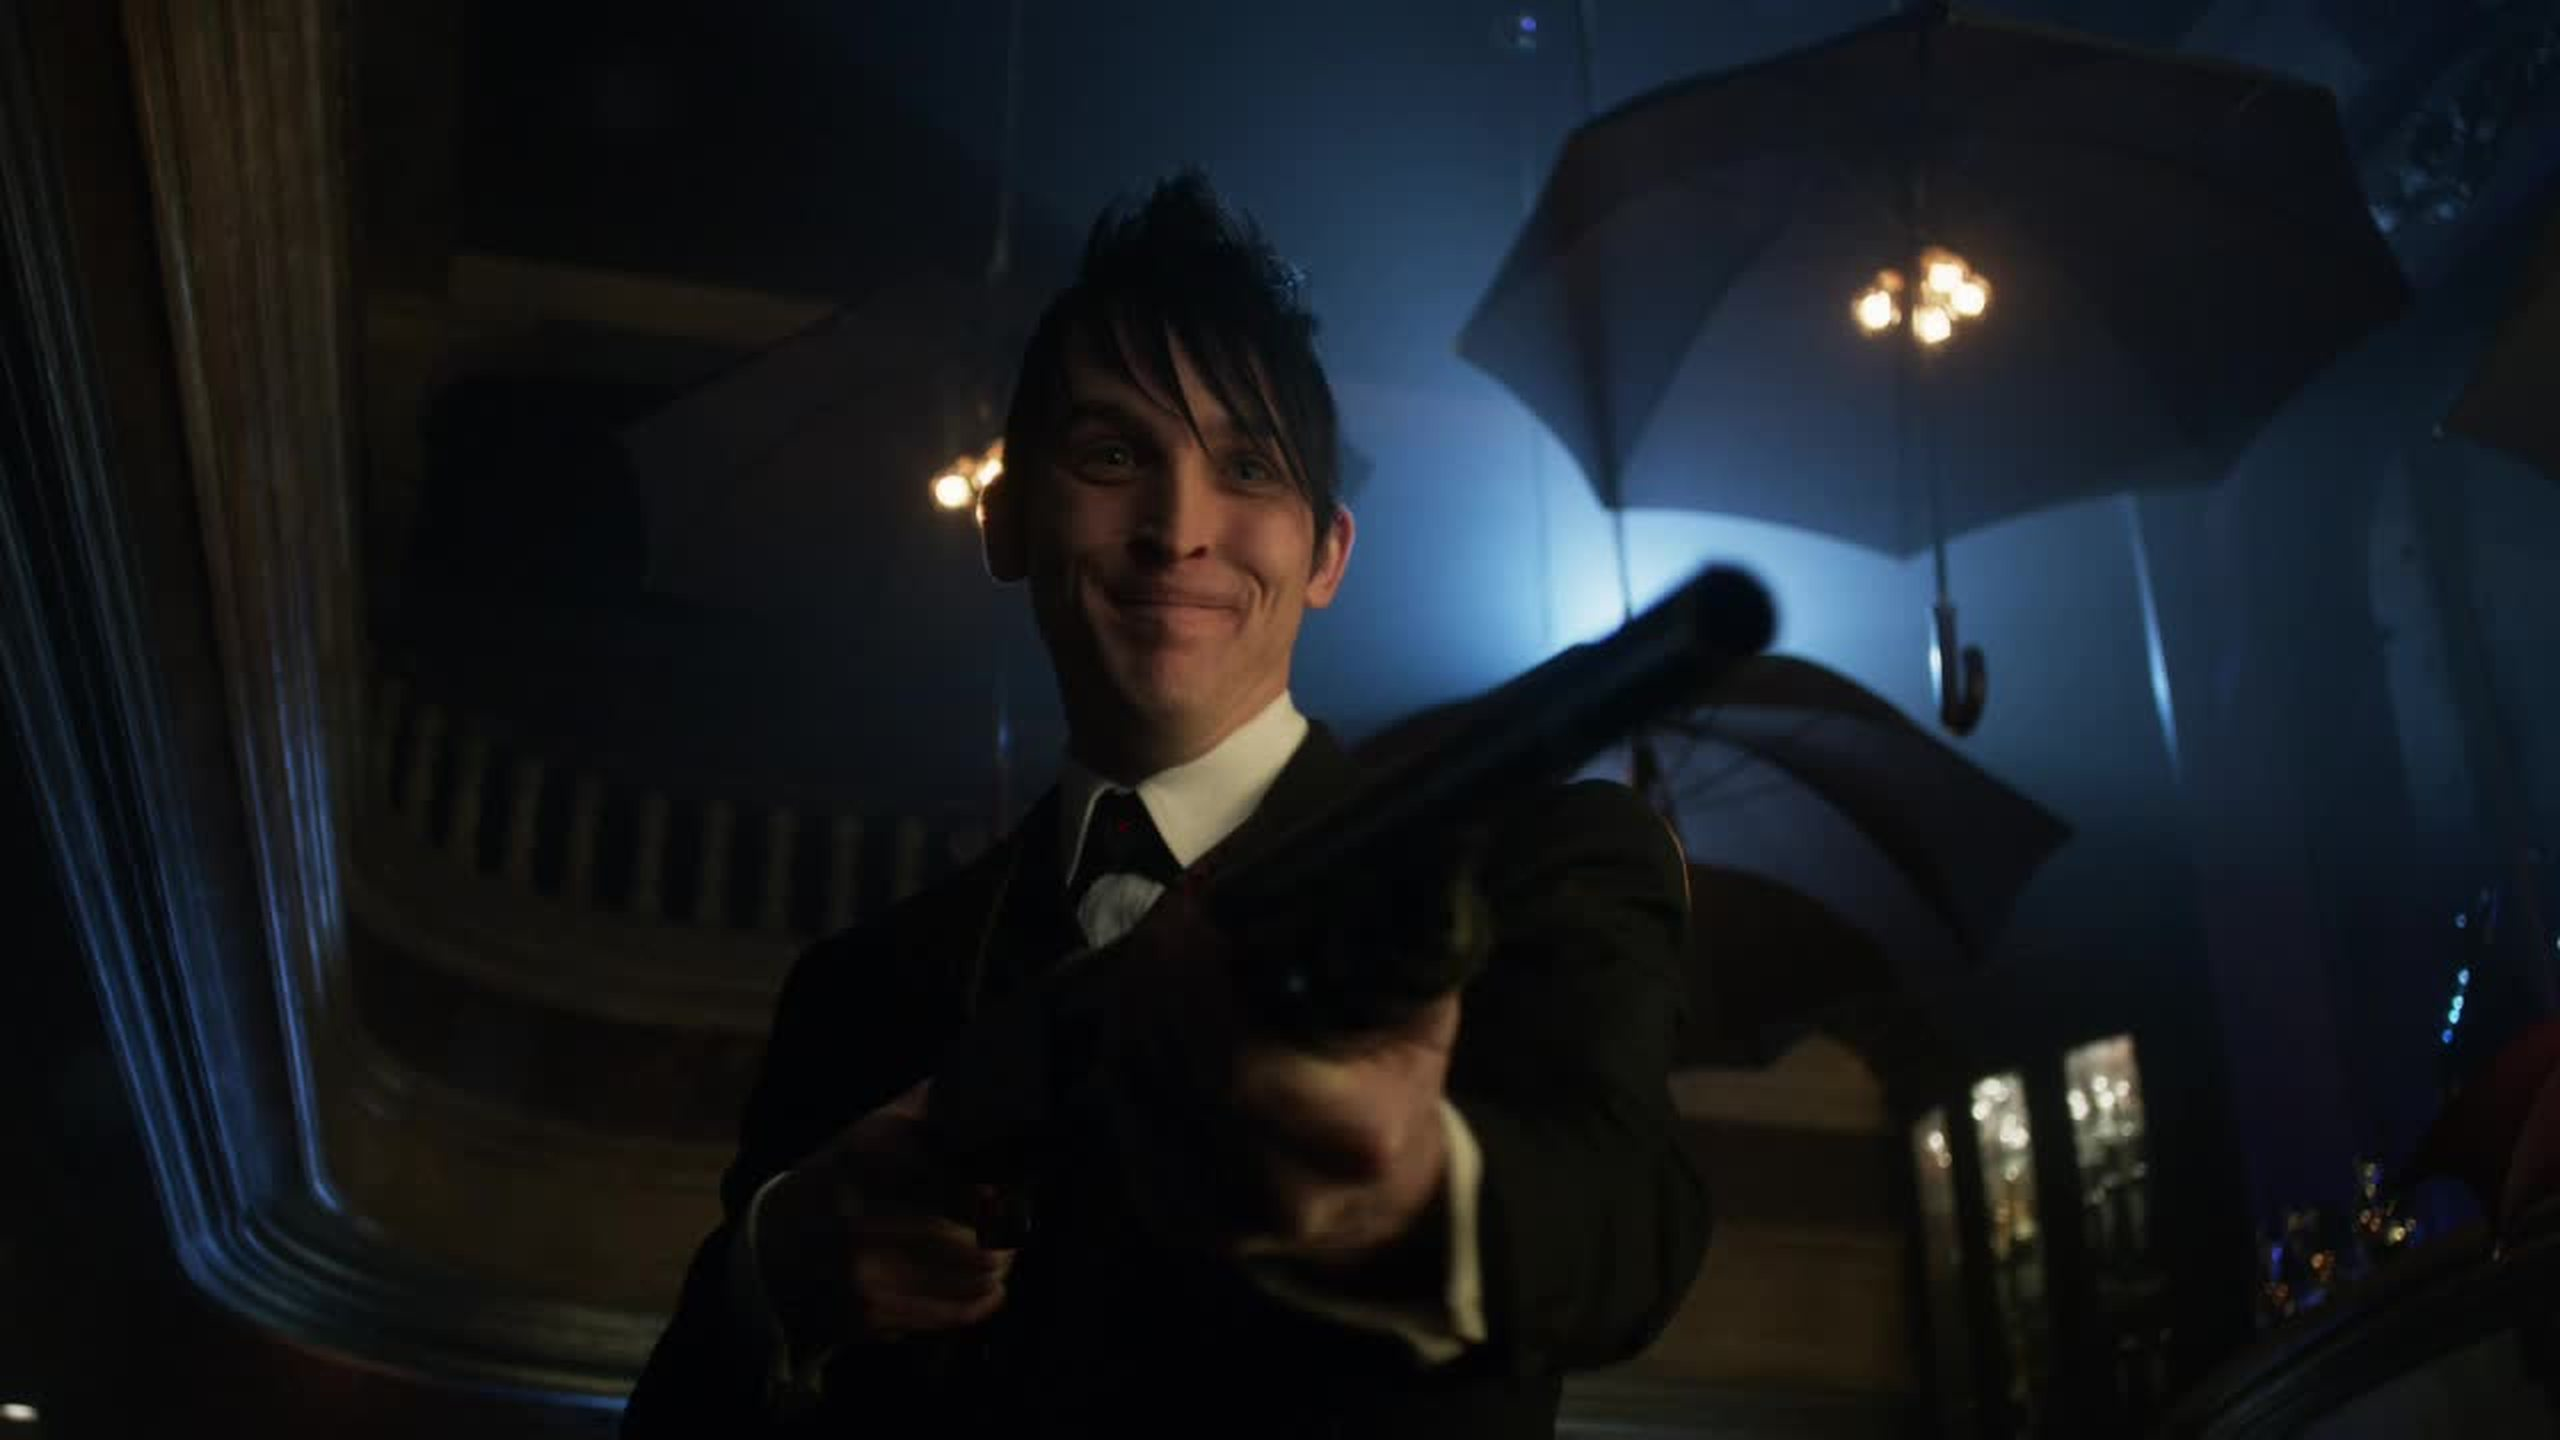 This show has instilled a newfound love of the Penguin. His actor seriously deserves an award.